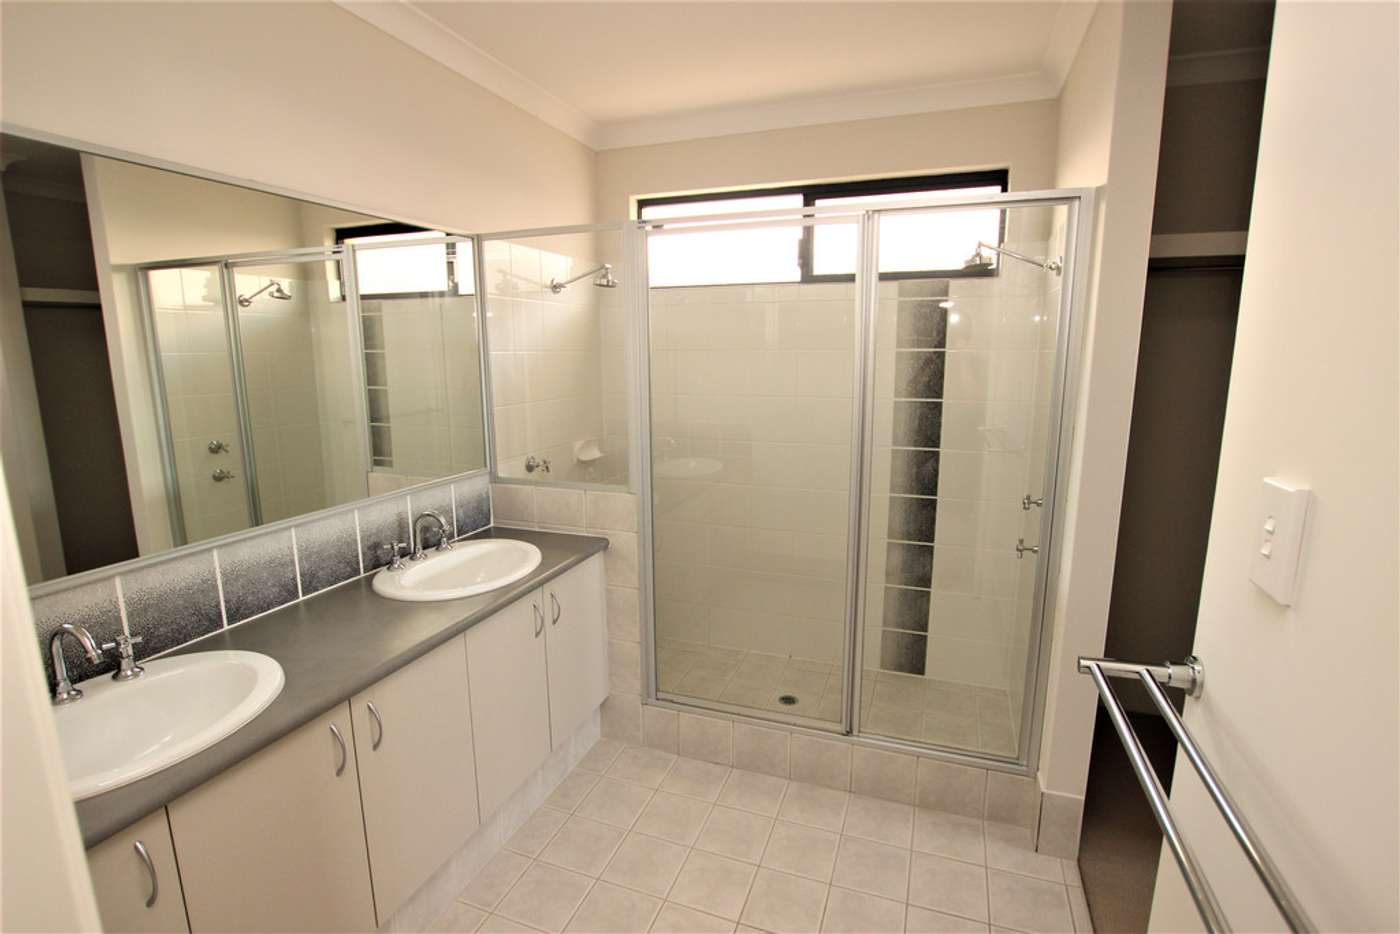 Sixth view of Homely house listing, 19 Barron Turn, South Yunderup WA 6208